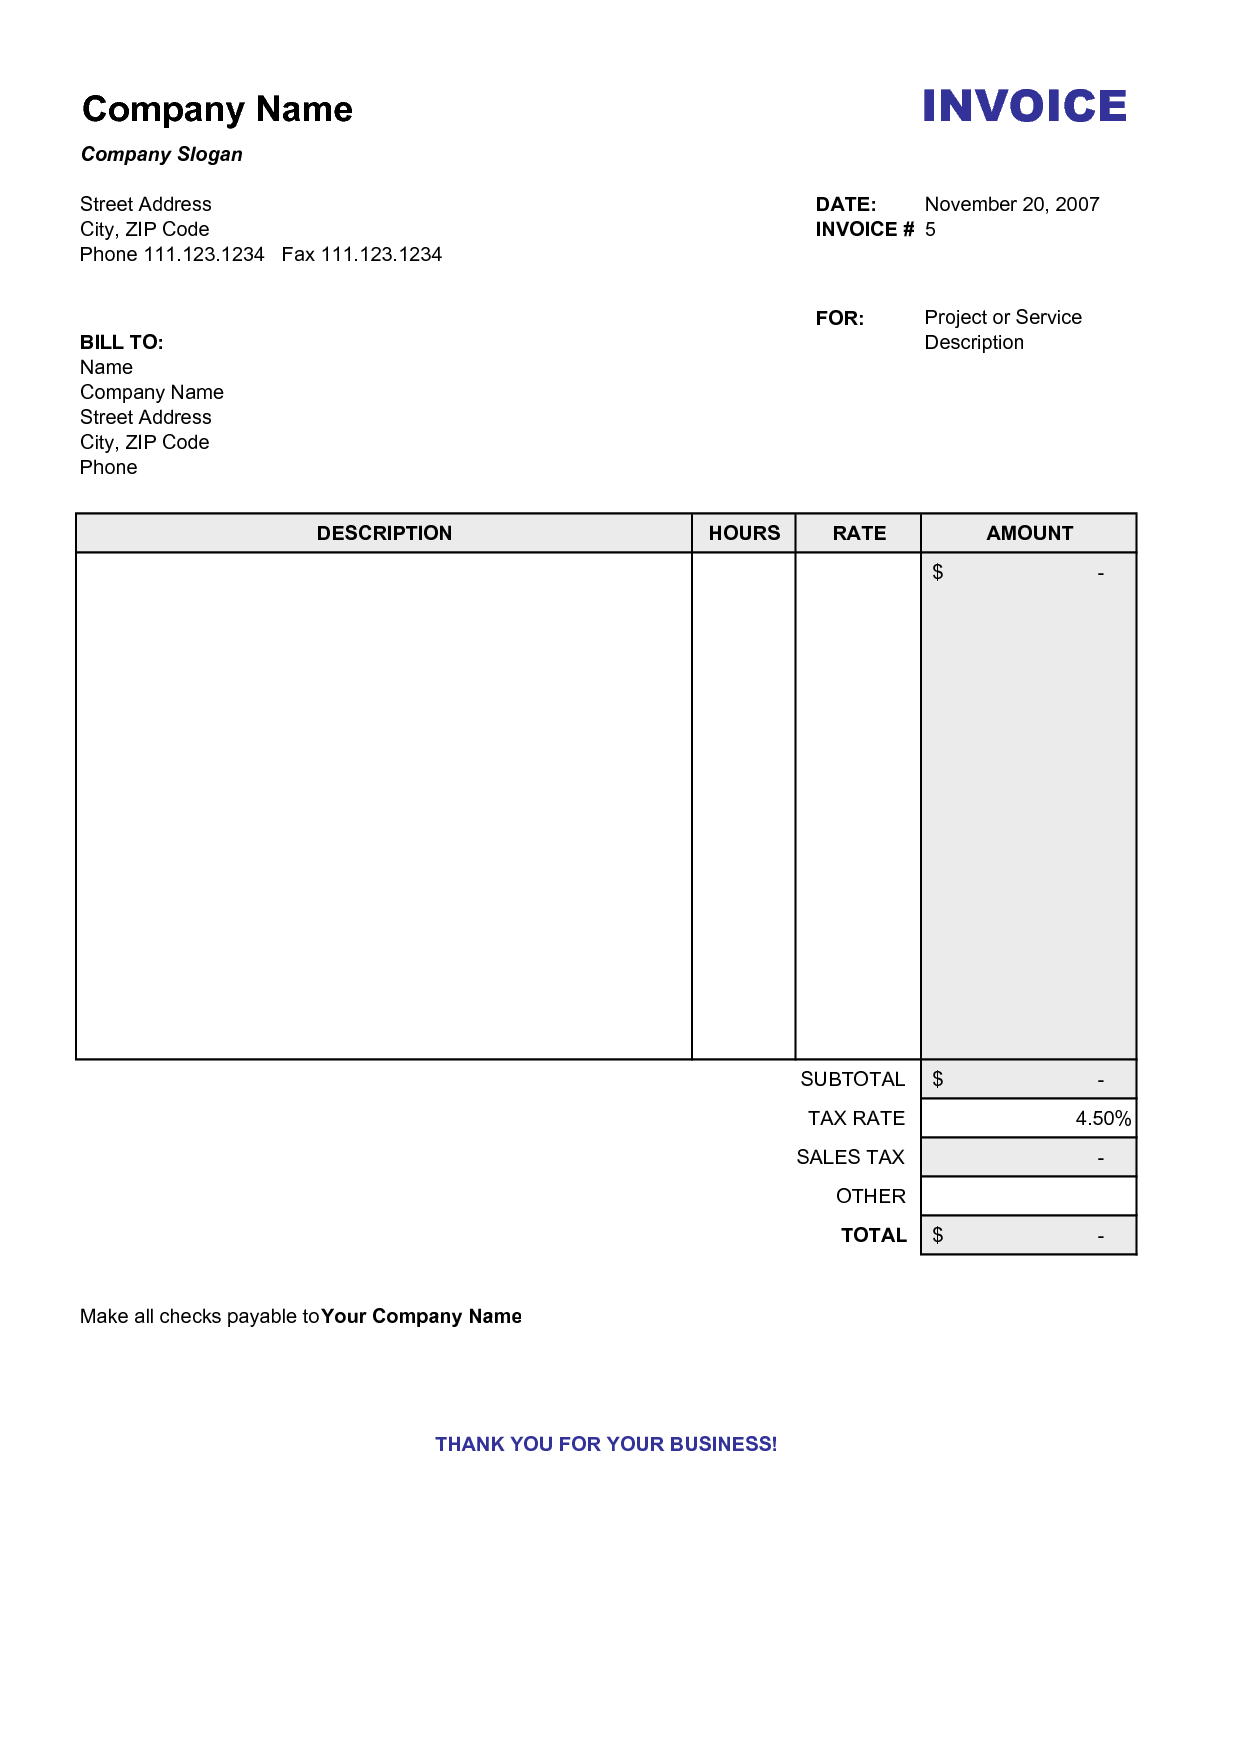 Blank Billing Invoice Scope Of Work Template Organization - Blank invoice templates